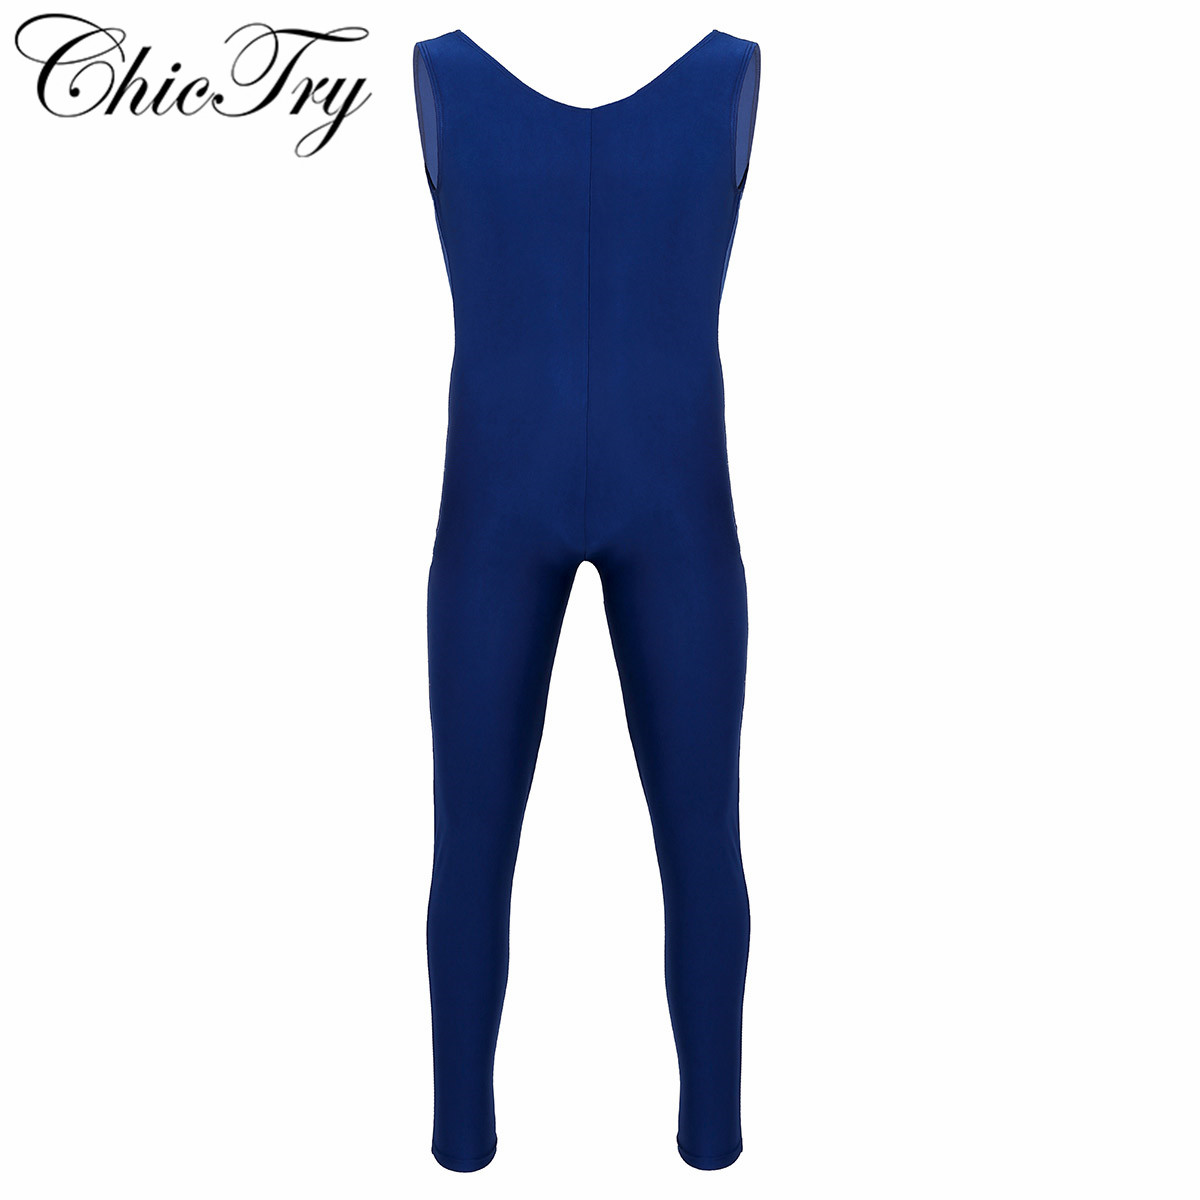 Male Mens Adults Dance Unitard Men Lycra Ballet Tight Jumpsuit Dance Costumes Thongs Bodysuit for Ballet Stage Performance